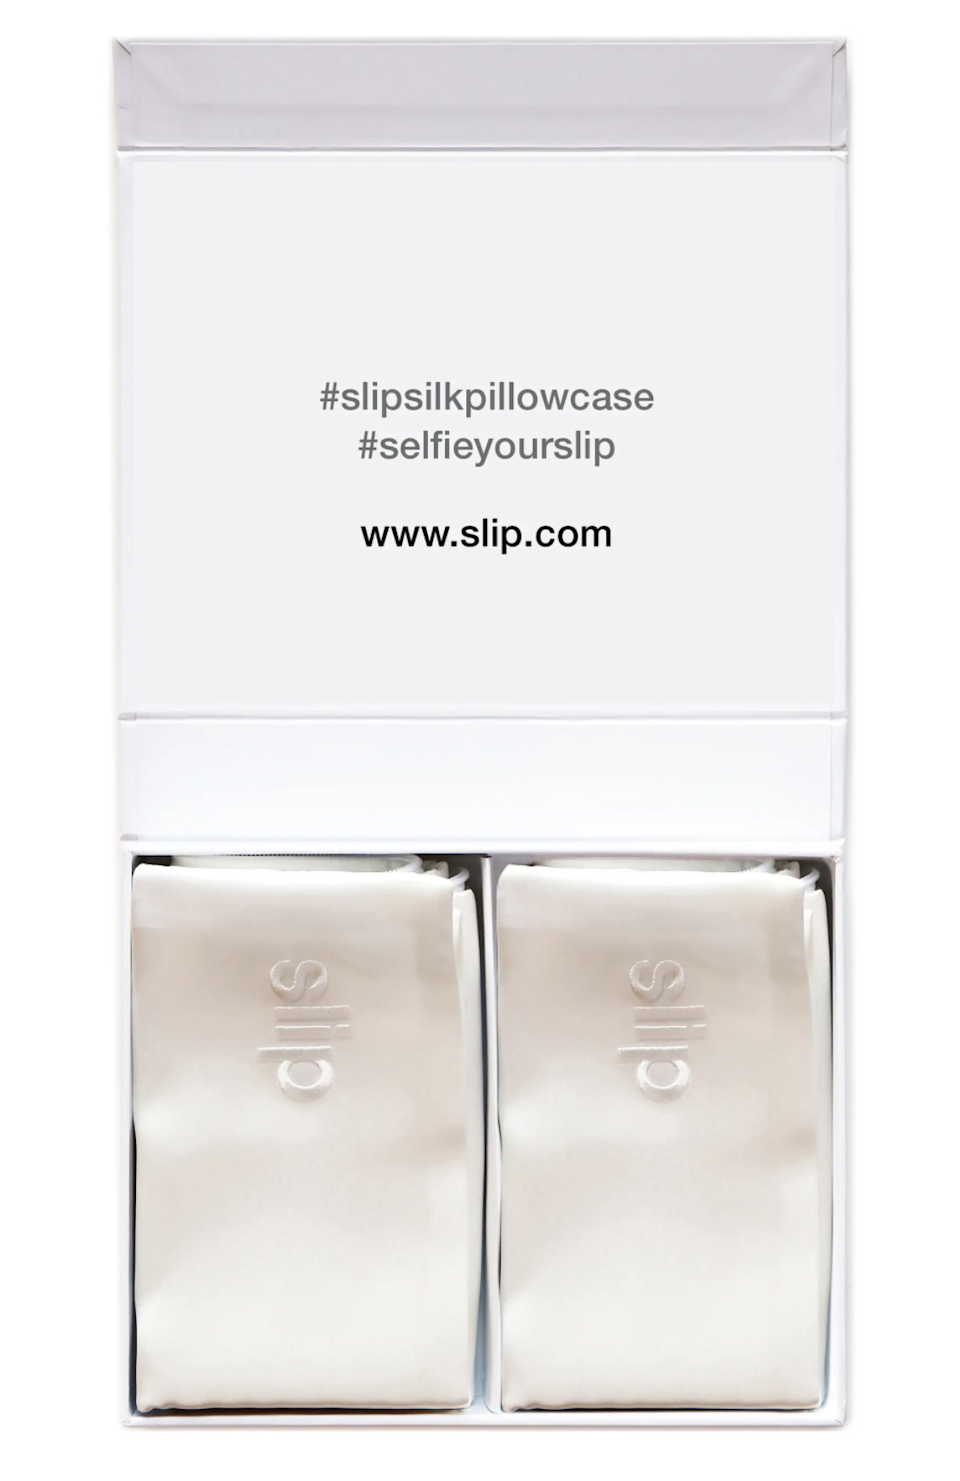 """<h2>Slip Silk Queen Pillowcase Duo</h2><br>In addition to feeling incredibly fancy, silk pillowcases can be a game-changer for smoother hair and clearer skin. Luckily, this Nordstrom-exclusive twin pack makes making the switch a one-and-done thing.<br><br><strong>Slip</strong> Silk Queen Pillowcase Duo ($178 Value), $, available at <a href=""""https://go.skimresources.com/?id=30283X879131&url=https%3A%2F%2Fwww.nordstrom.com%2Fs%2Fslip-silk-queen-pillowcase-duo-178-value-nordstrom-exclusive%2F4626949"""" rel=""""nofollow noopener"""" target=""""_blank"""" data-ylk=""""slk:Nordstrom"""" class=""""link rapid-noclick-resp"""">Nordstrom</a>"""